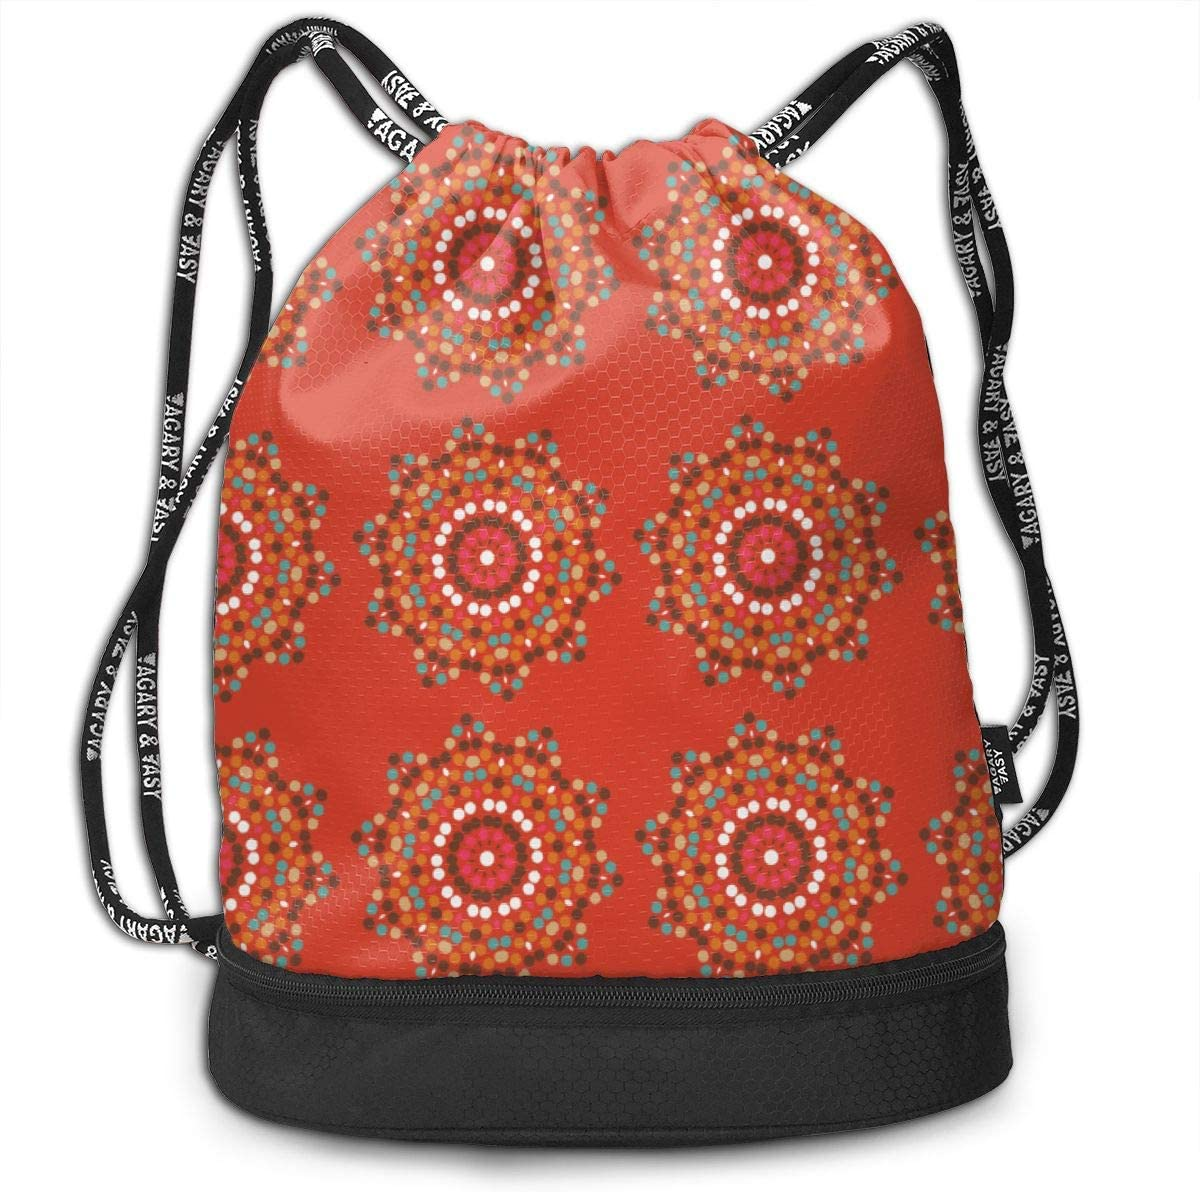 Mosaics On Tangerine Drawstring Backpack Sports Athletic Gym Cinch Sack String Storage Bags for Hiking Travel Beach